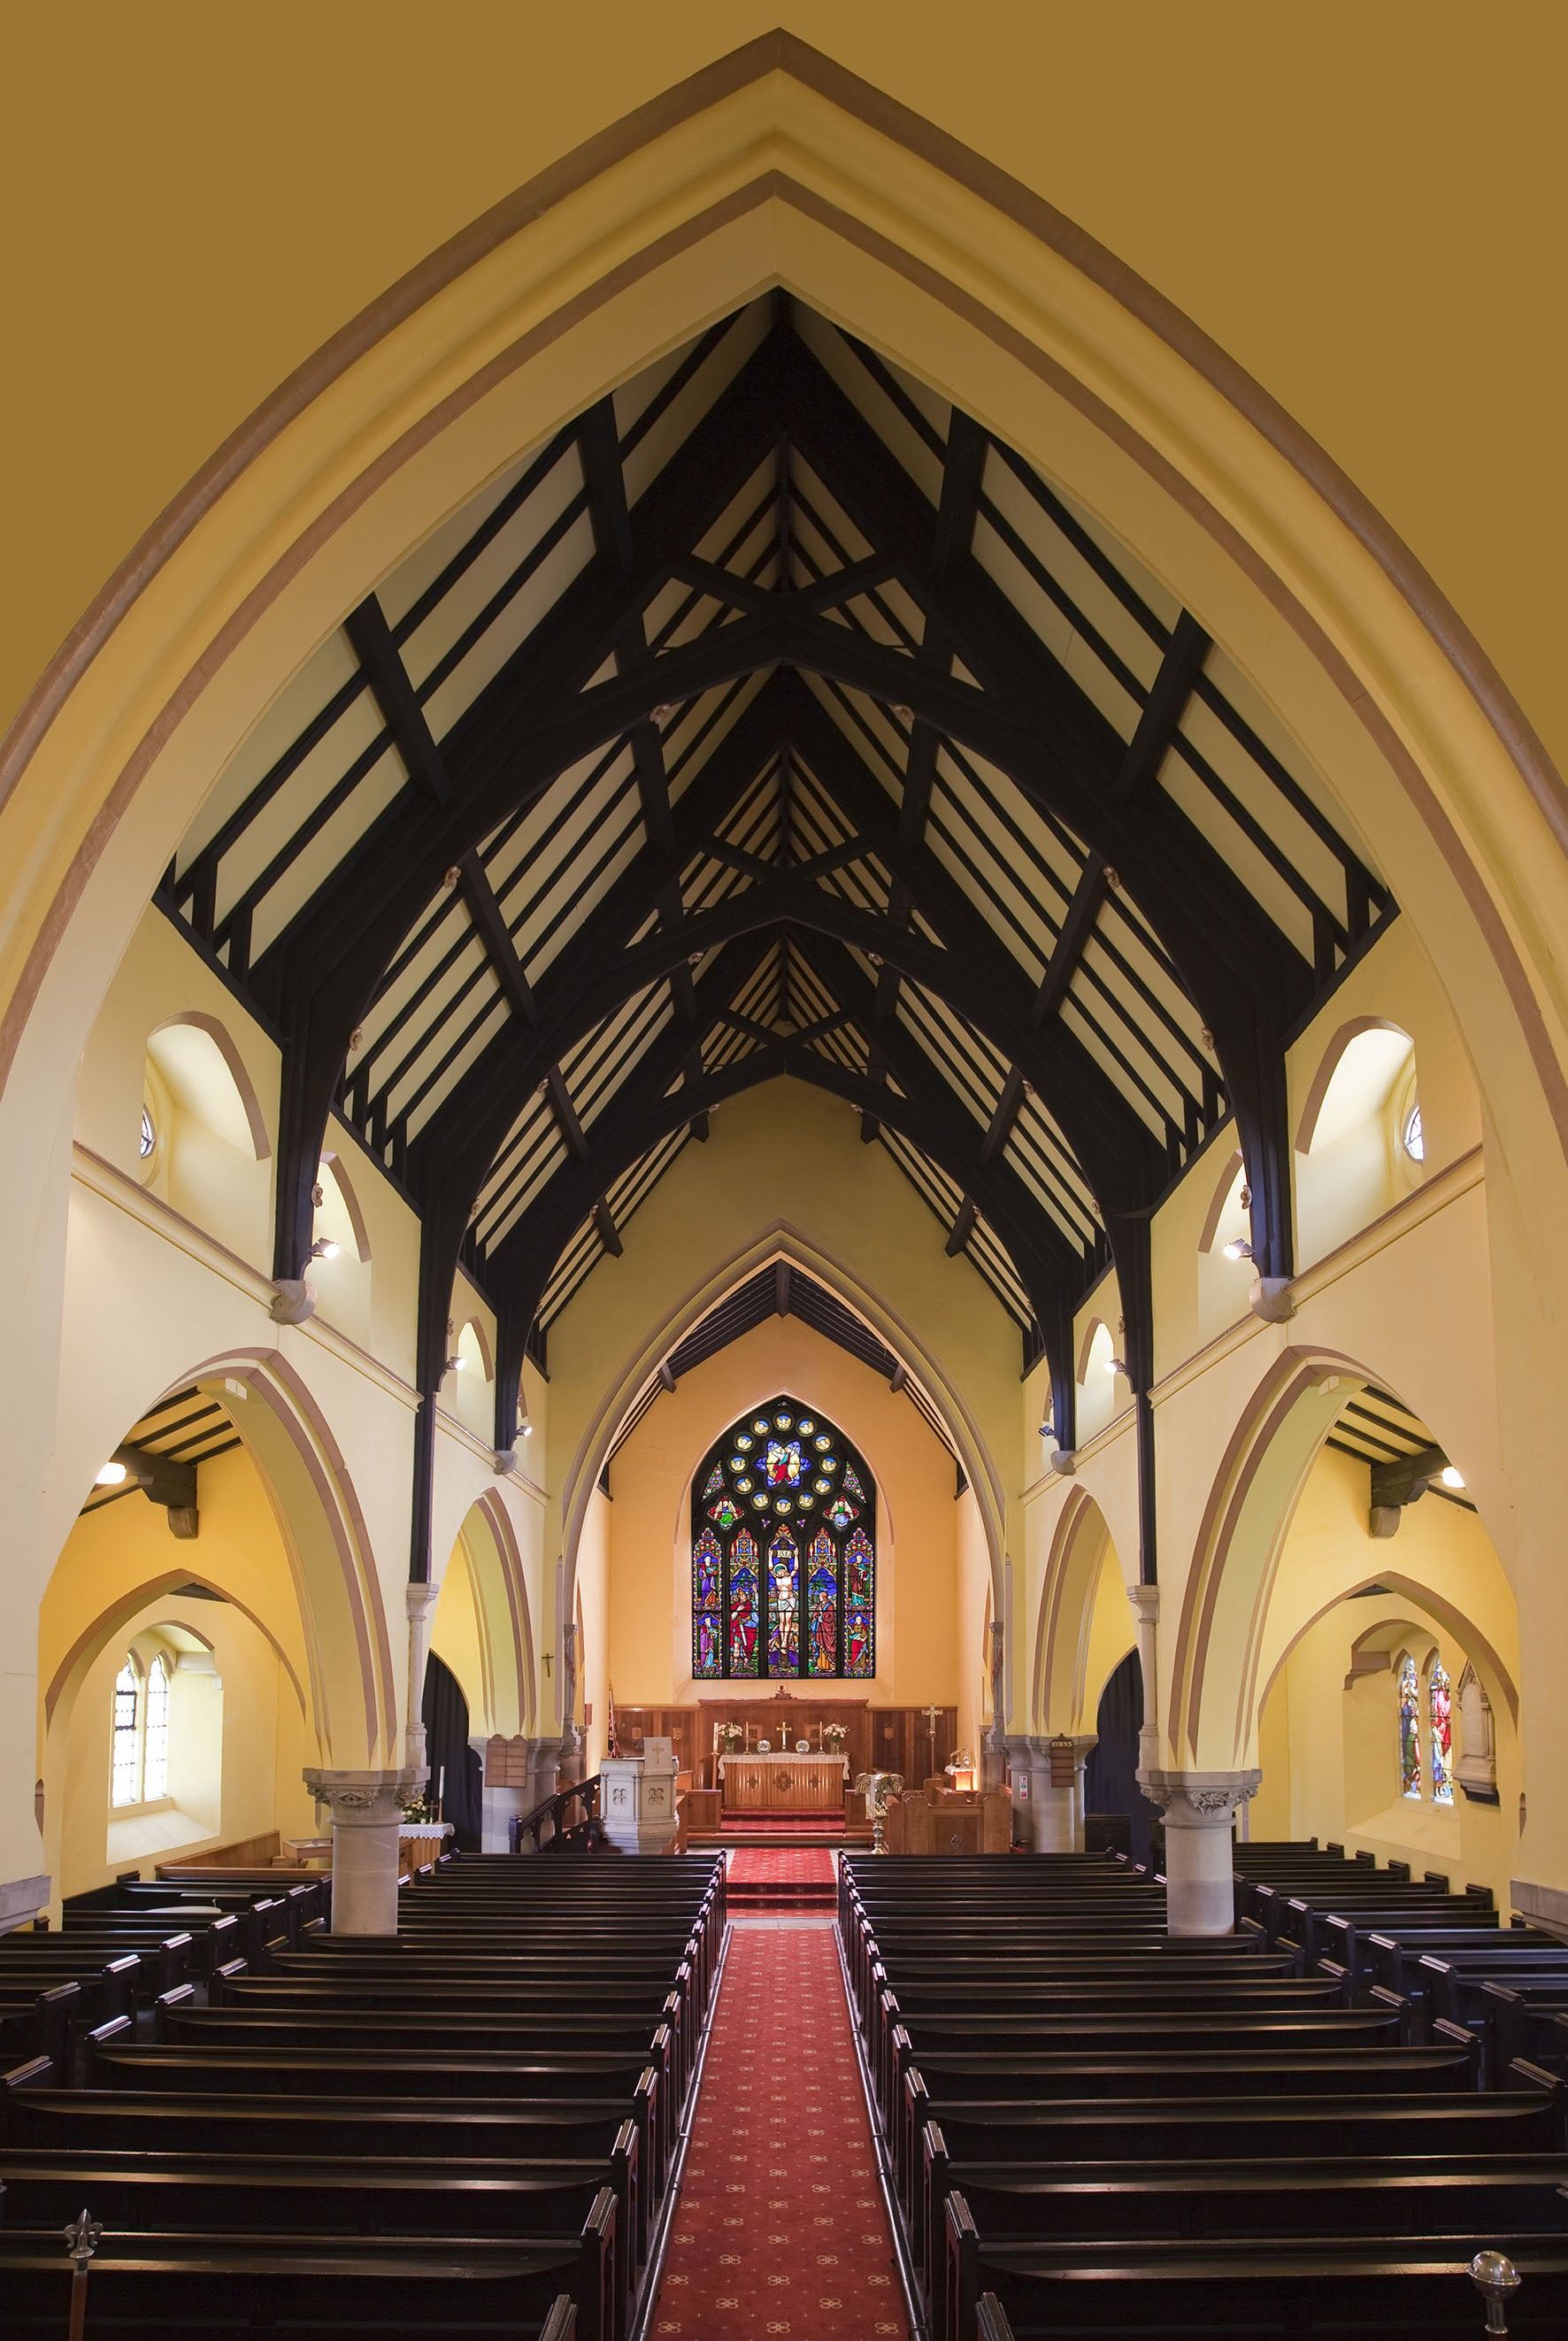 christ church denshaw interior.jpg